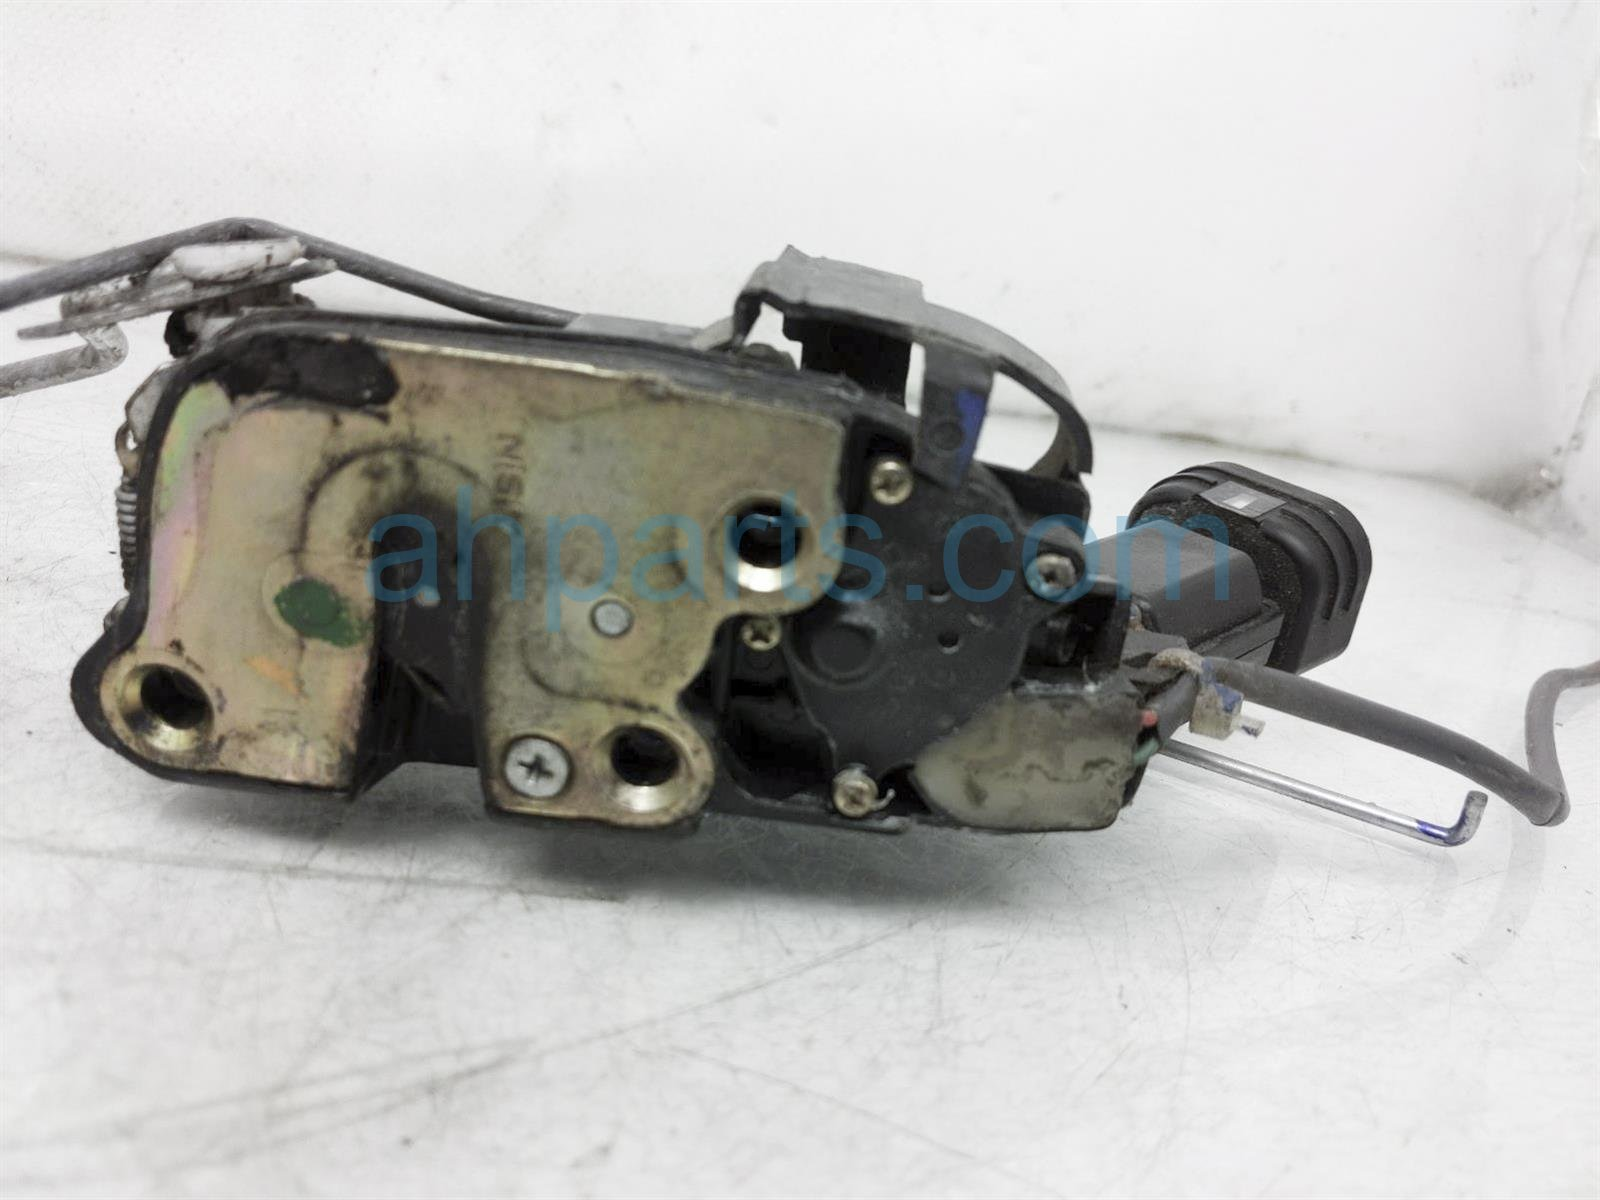 2001 Toyota Camry Outside/exterior Front Passenger Door Handle   White 69210 AA010 A0 Replacement